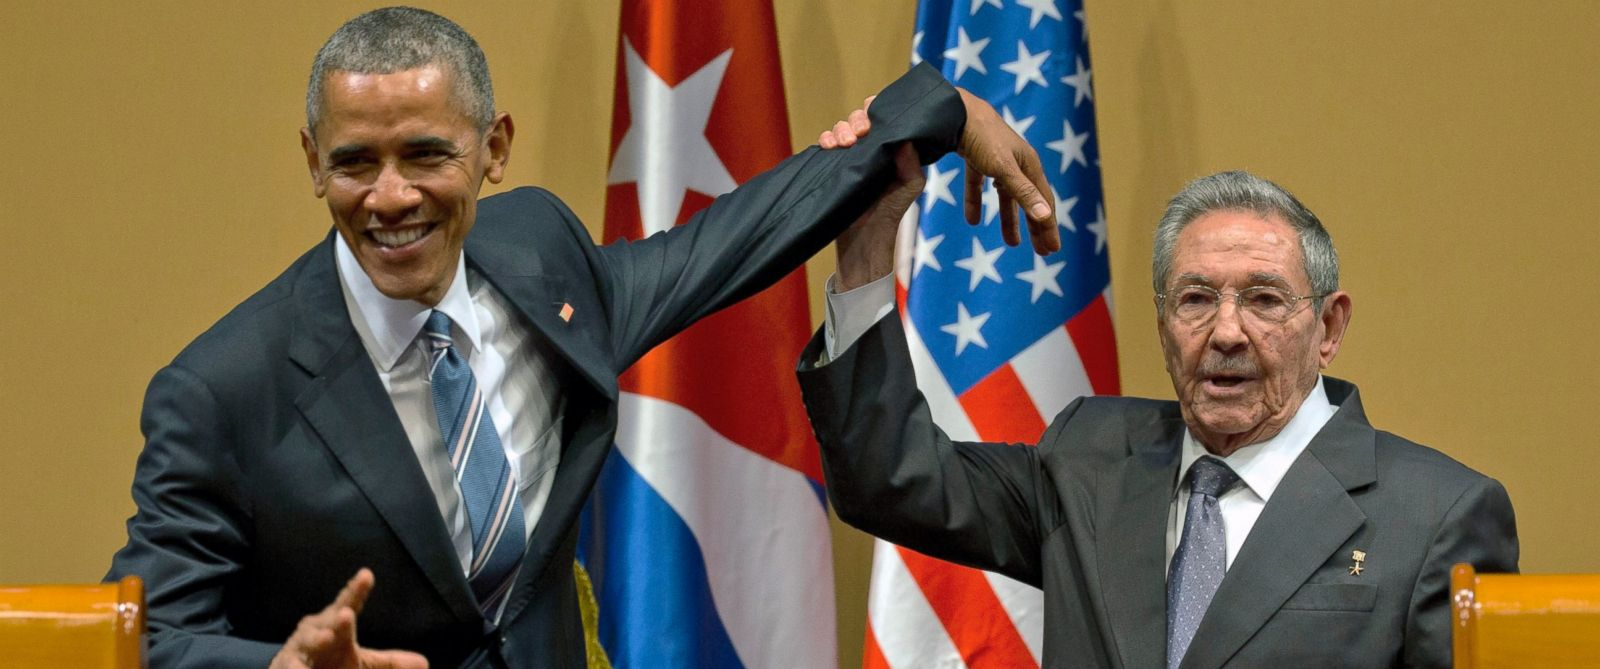 PHOTO: Cuban President Raul Castro, right, tries to lift up the arm of President Barack Obama at the conclusion of their joint news conference at the Palace of the Revolution, March 21, 2016, in Havana, Cuba.